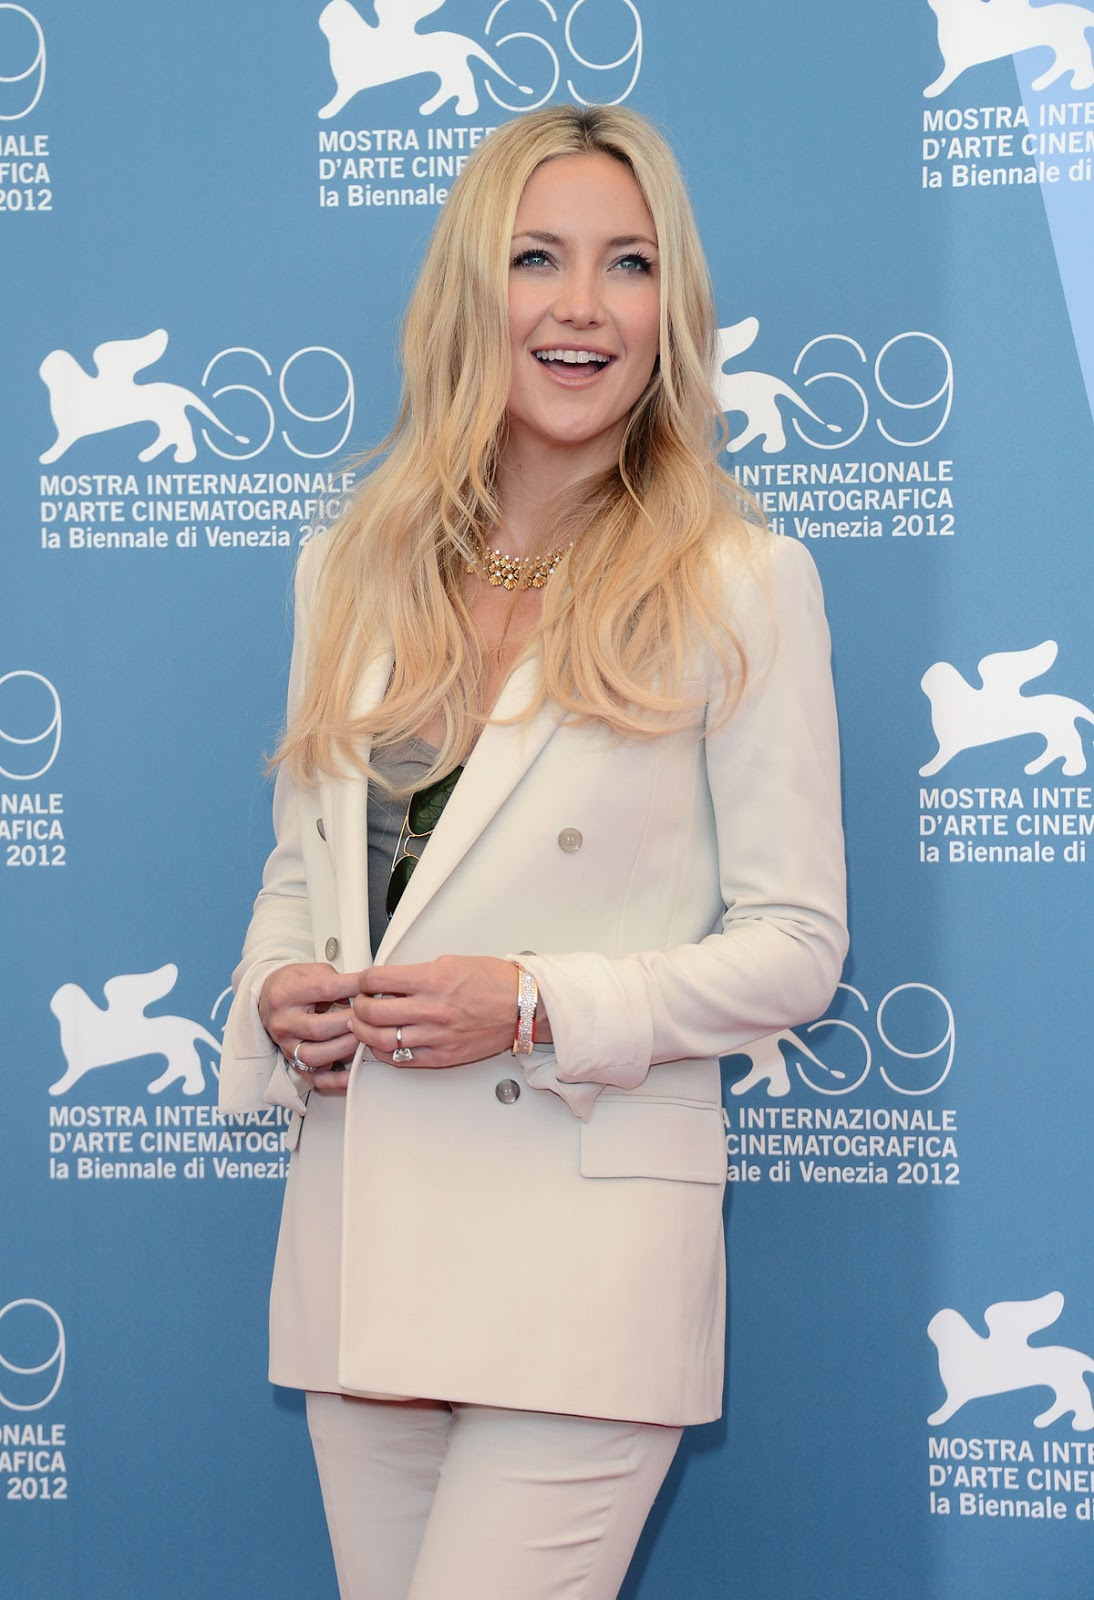 HQ Photos of Kate Hudson at The Reluctant Fundamentalist Photocall in Venice